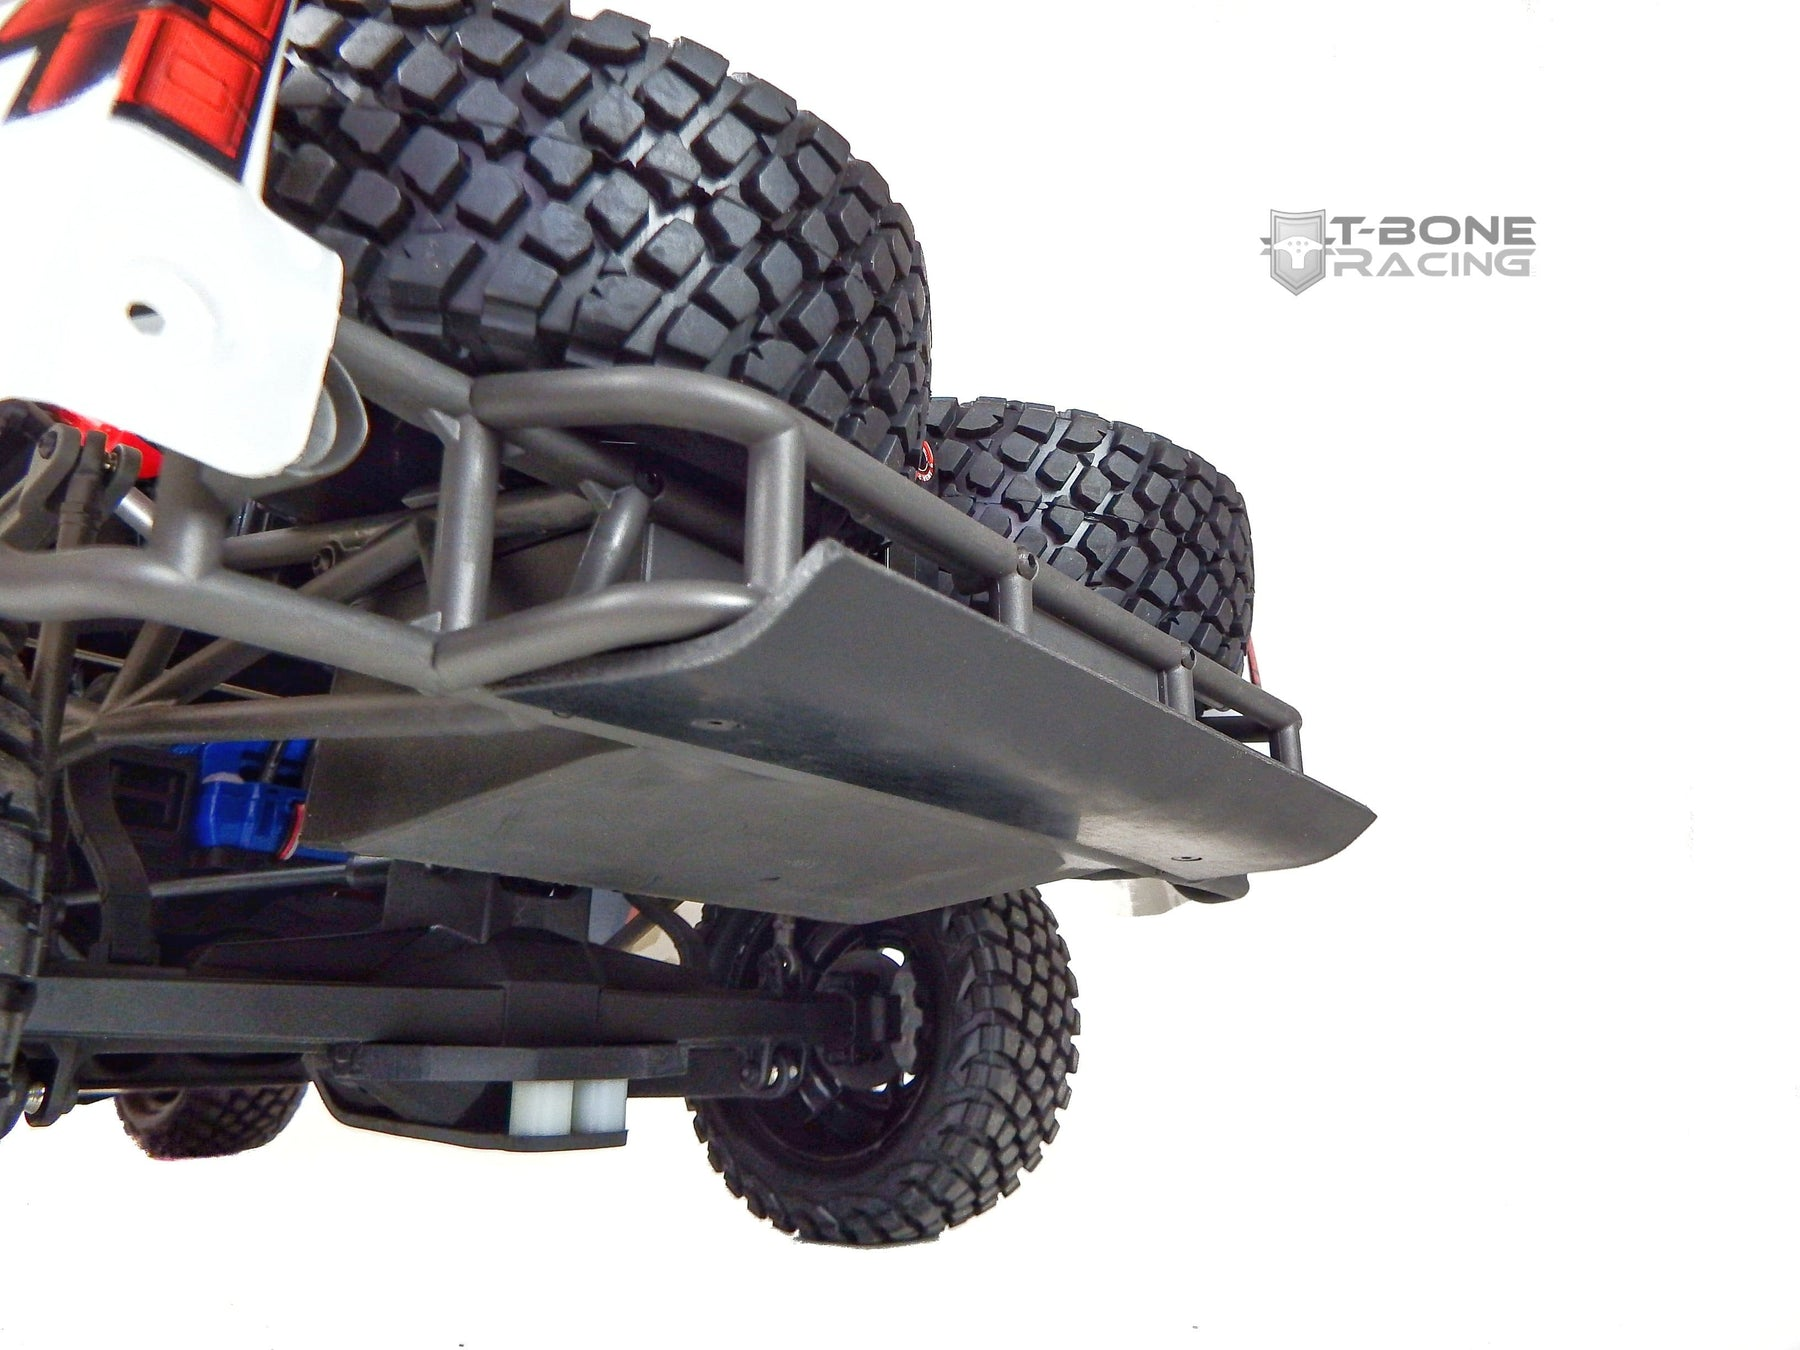 62181 - Rear Skid - Traxxas UDR Unlimited Desert Racer